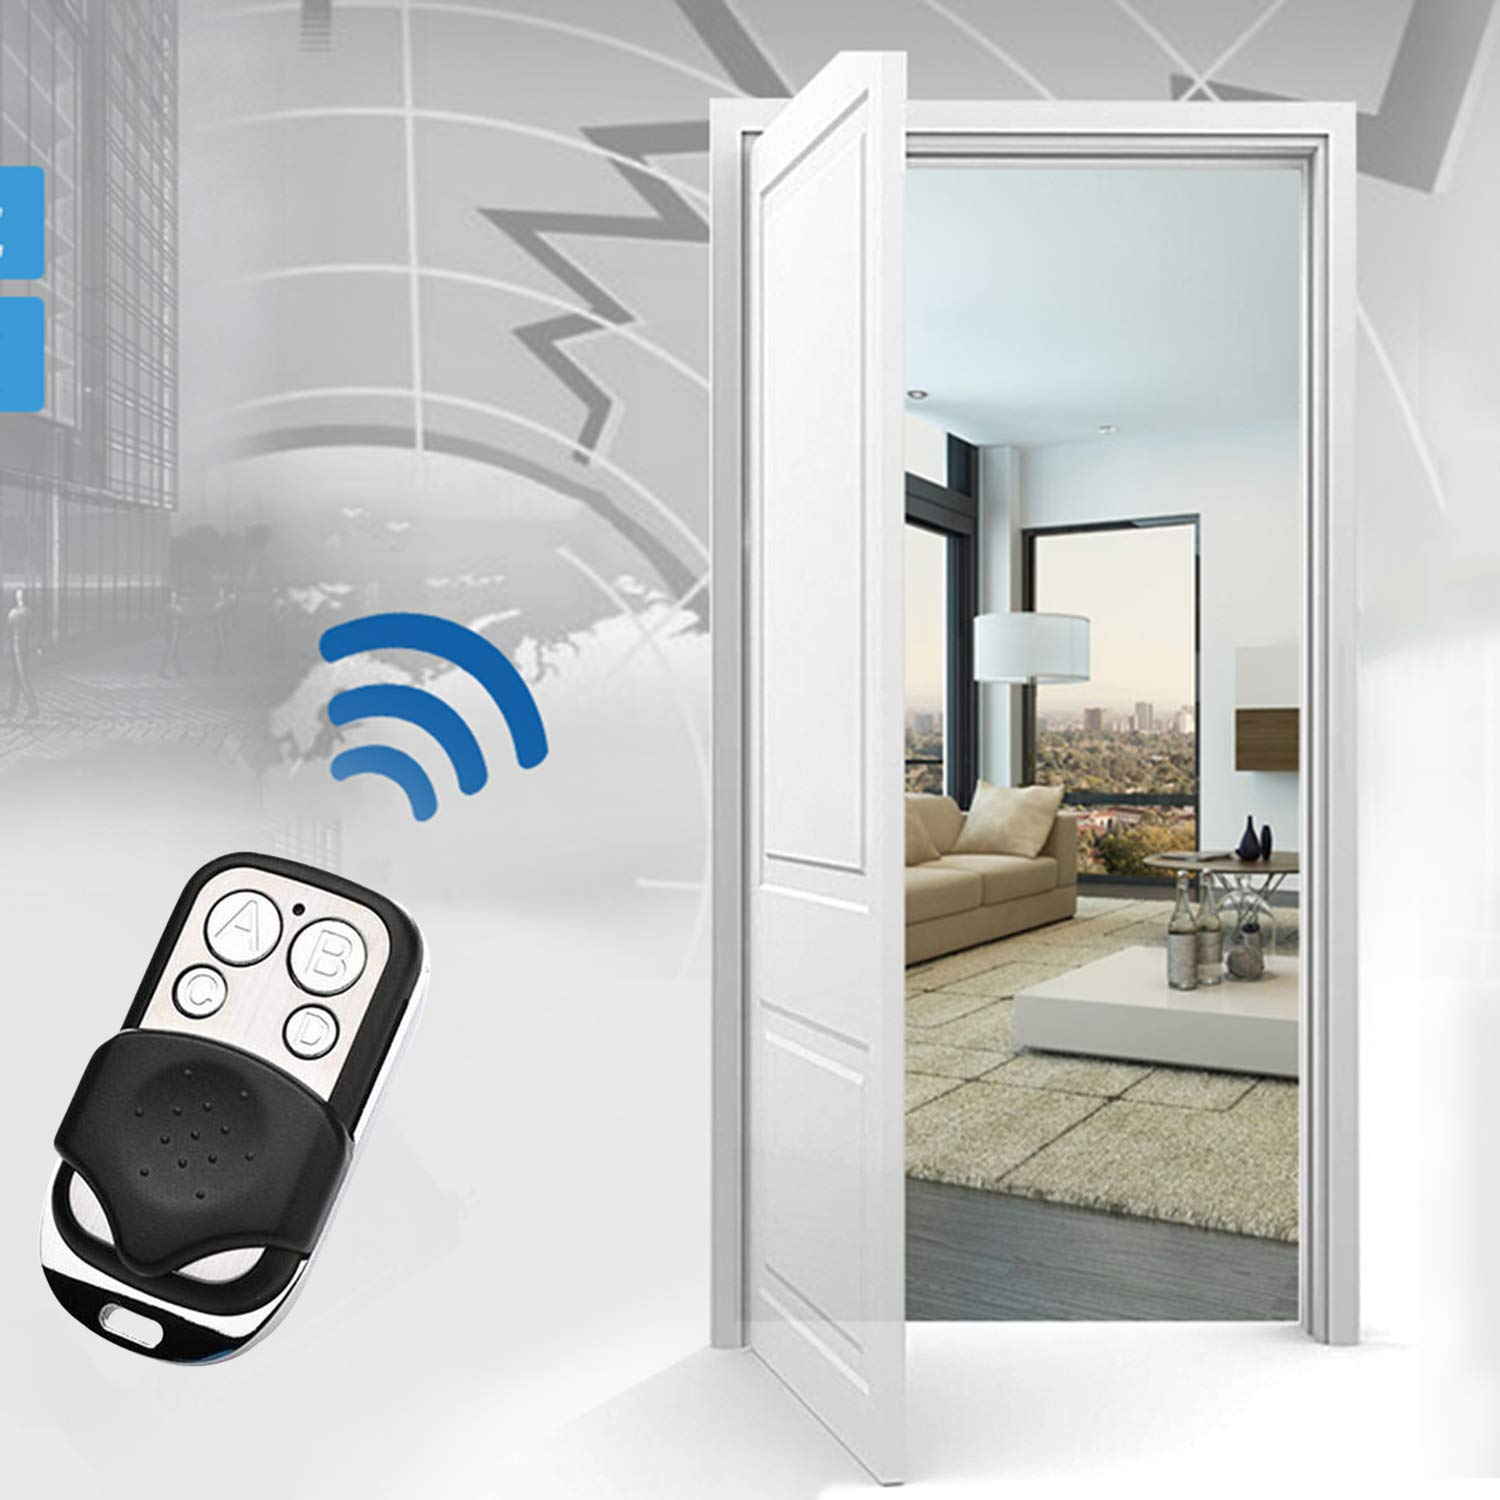 4 Channel Wireless RF Remote Control ABCD 433 MHz Universal Electric Gate Garage Door Remote Control Key Fob Controller